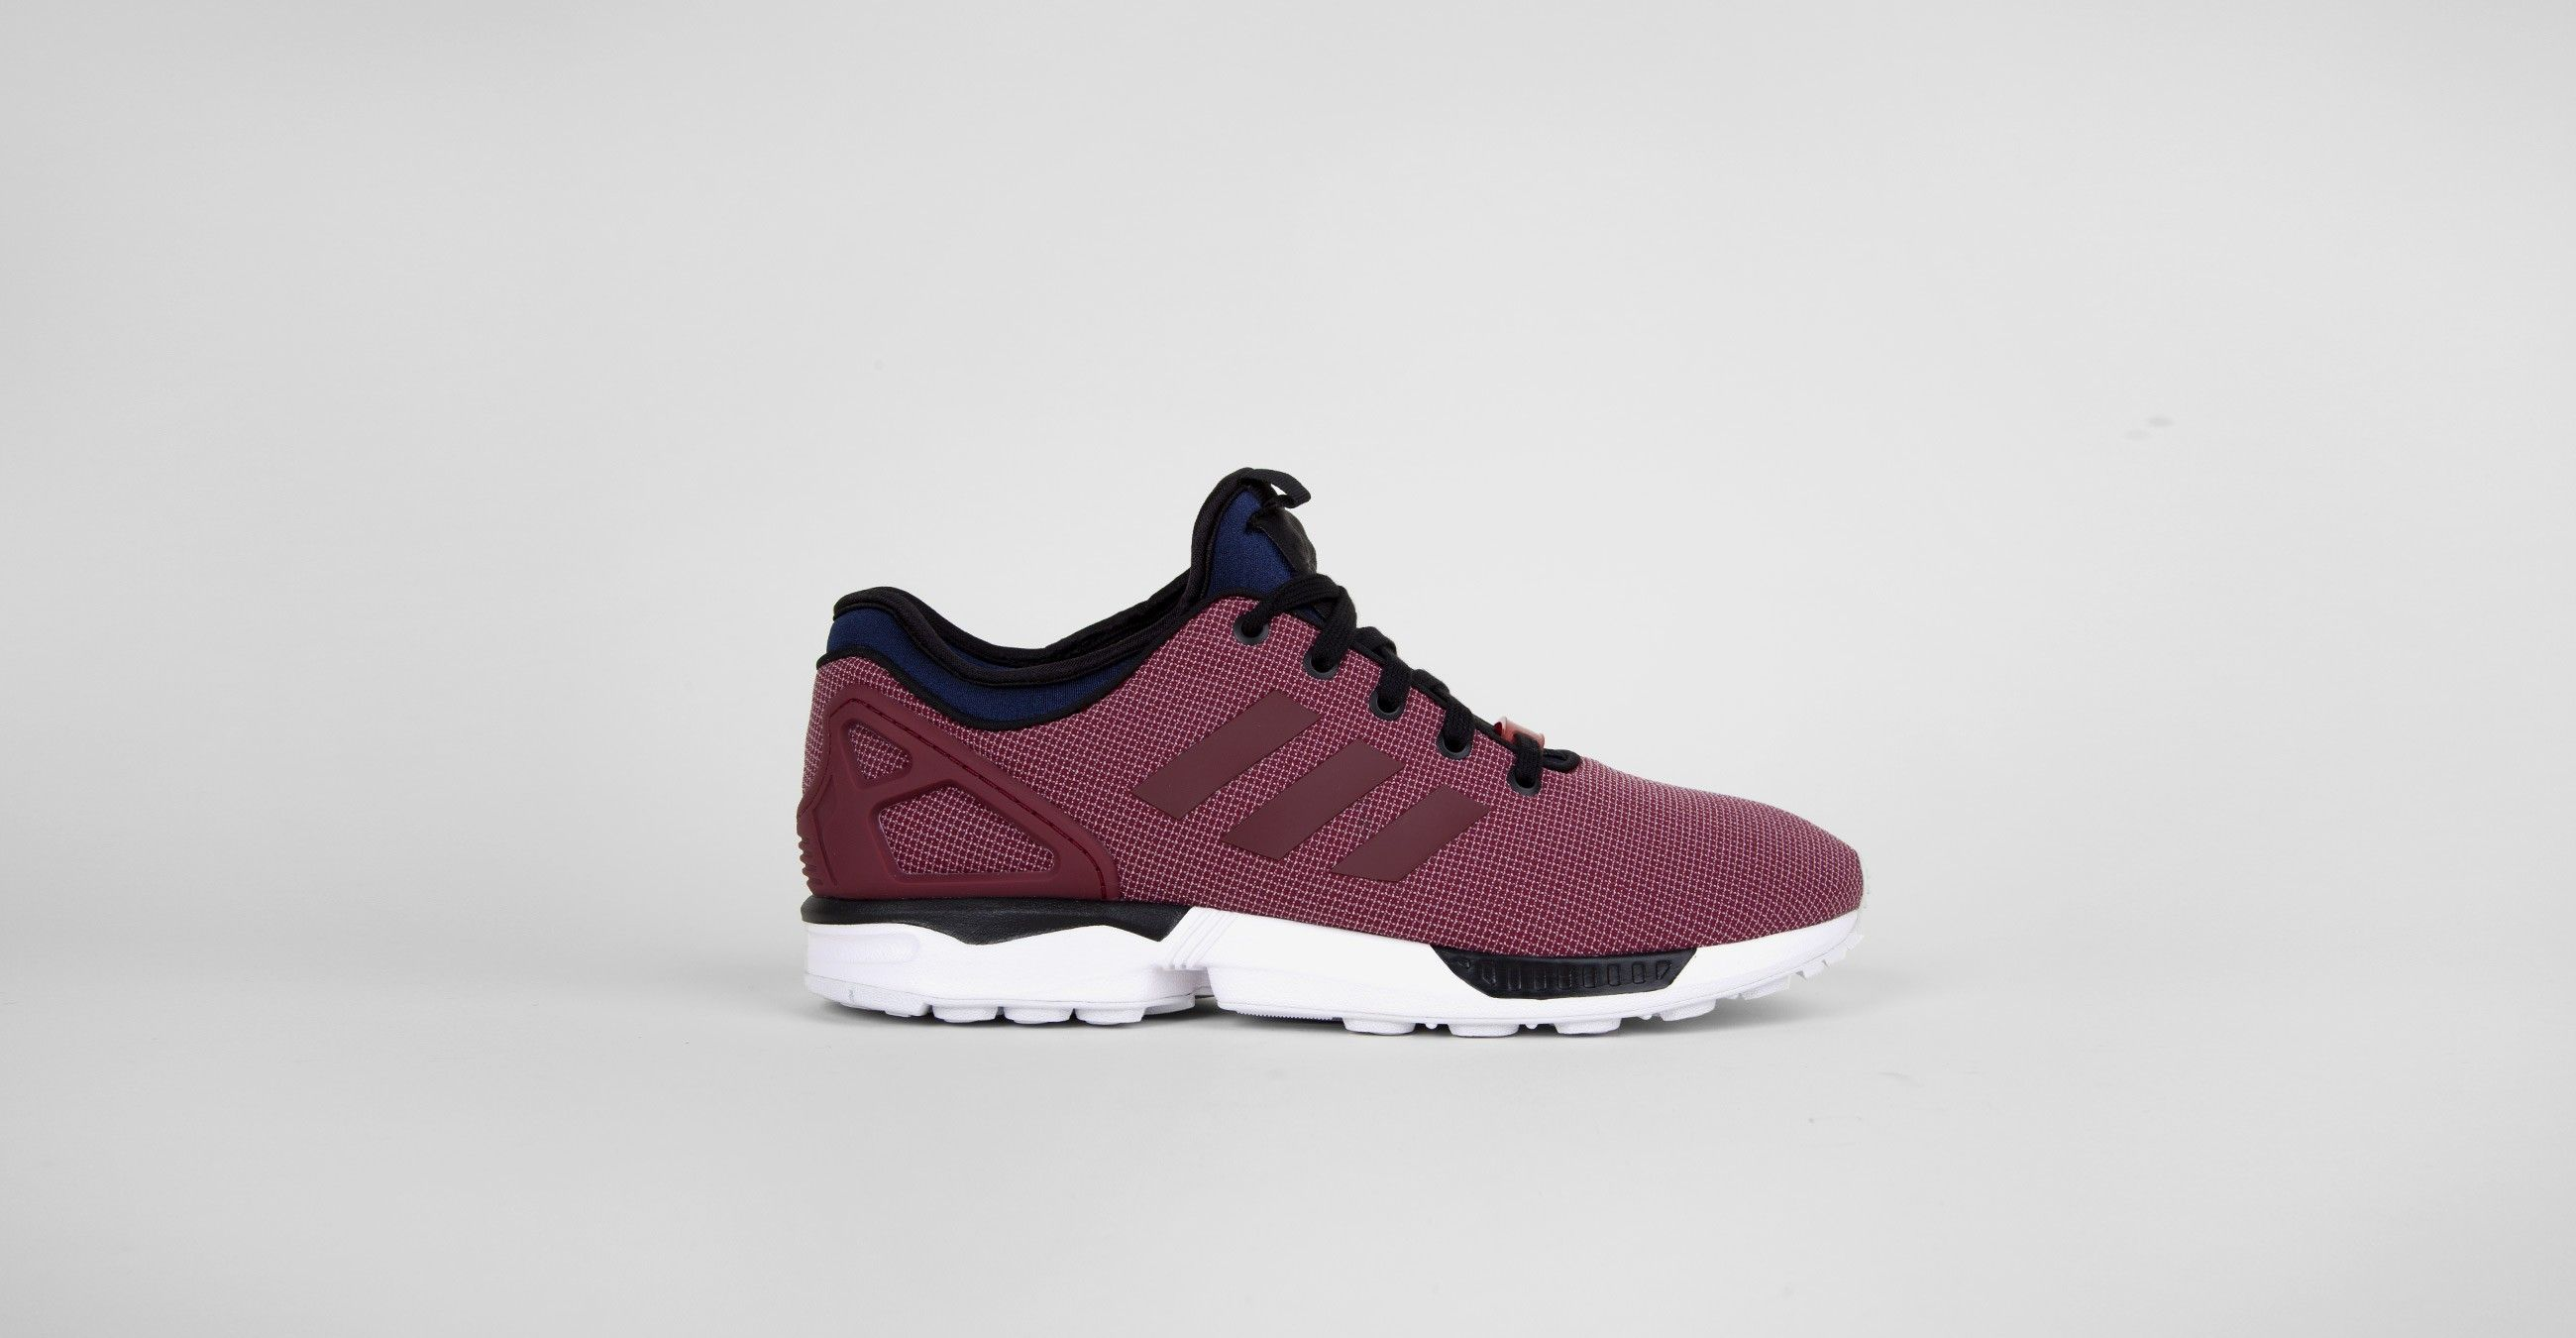 710a0c407 ... Adidas ZX Flux Tech Red Wine – VooStore ...